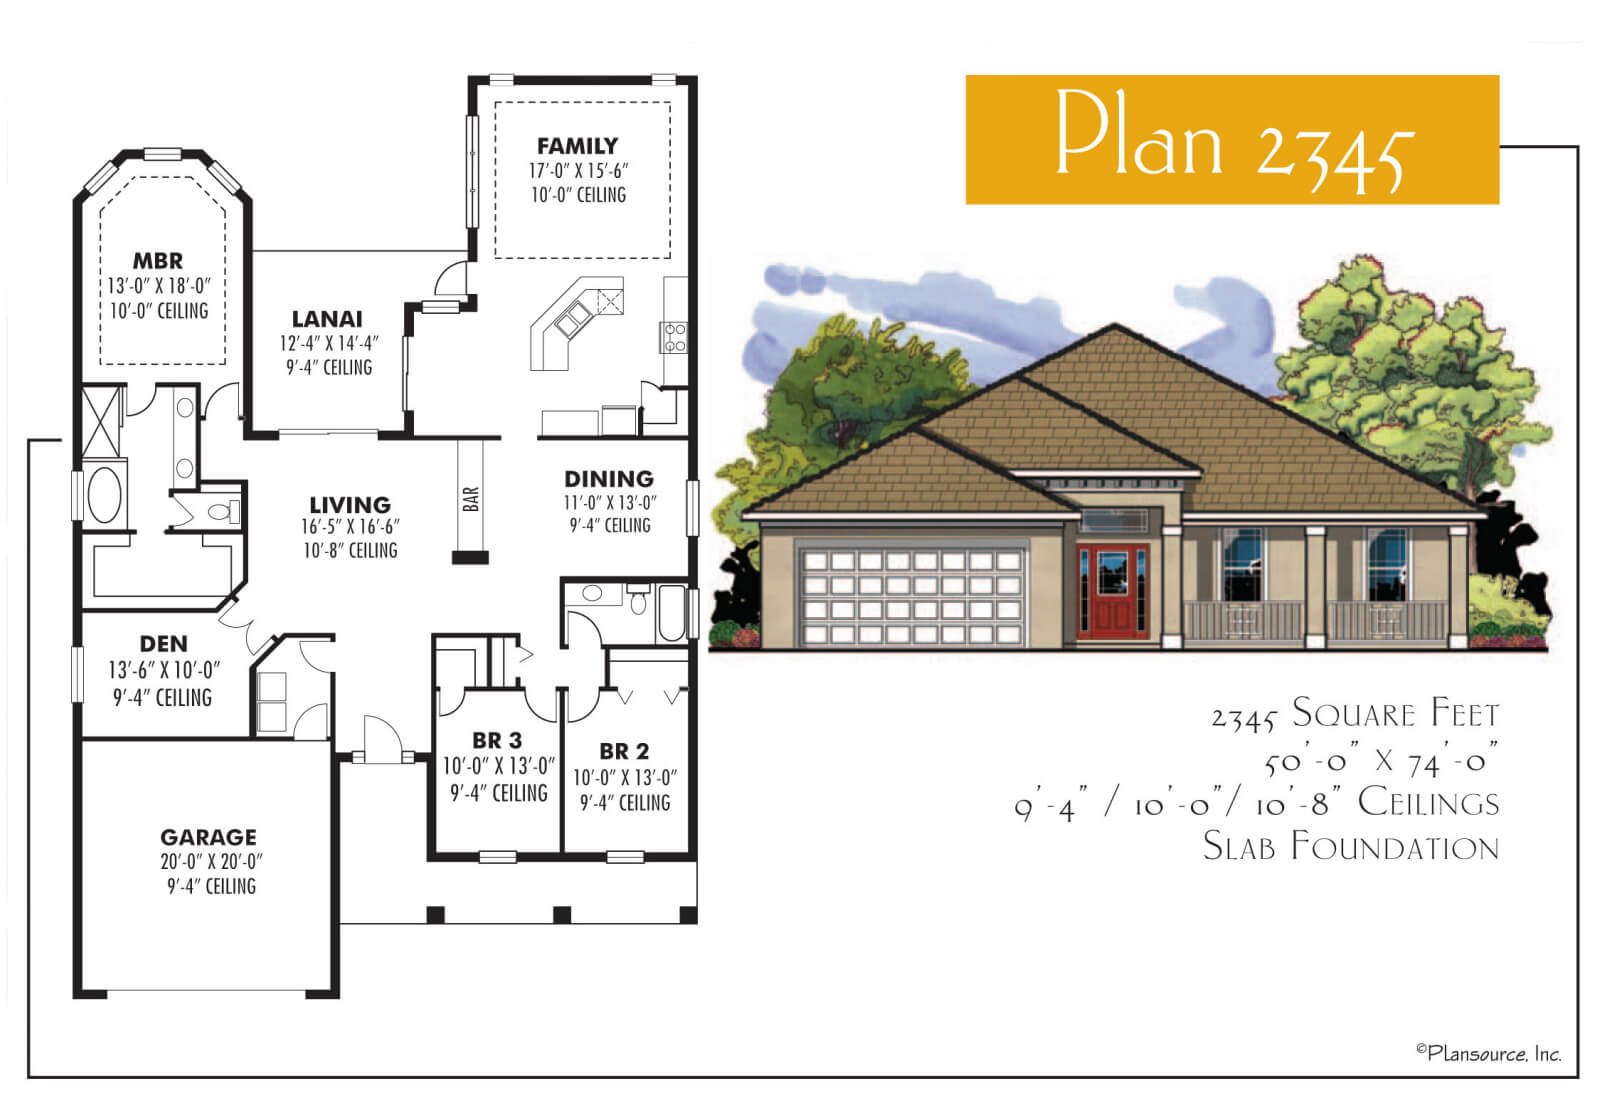 Floor Plans,2,001 SQ FT TO 2,500 SQ FT,1036